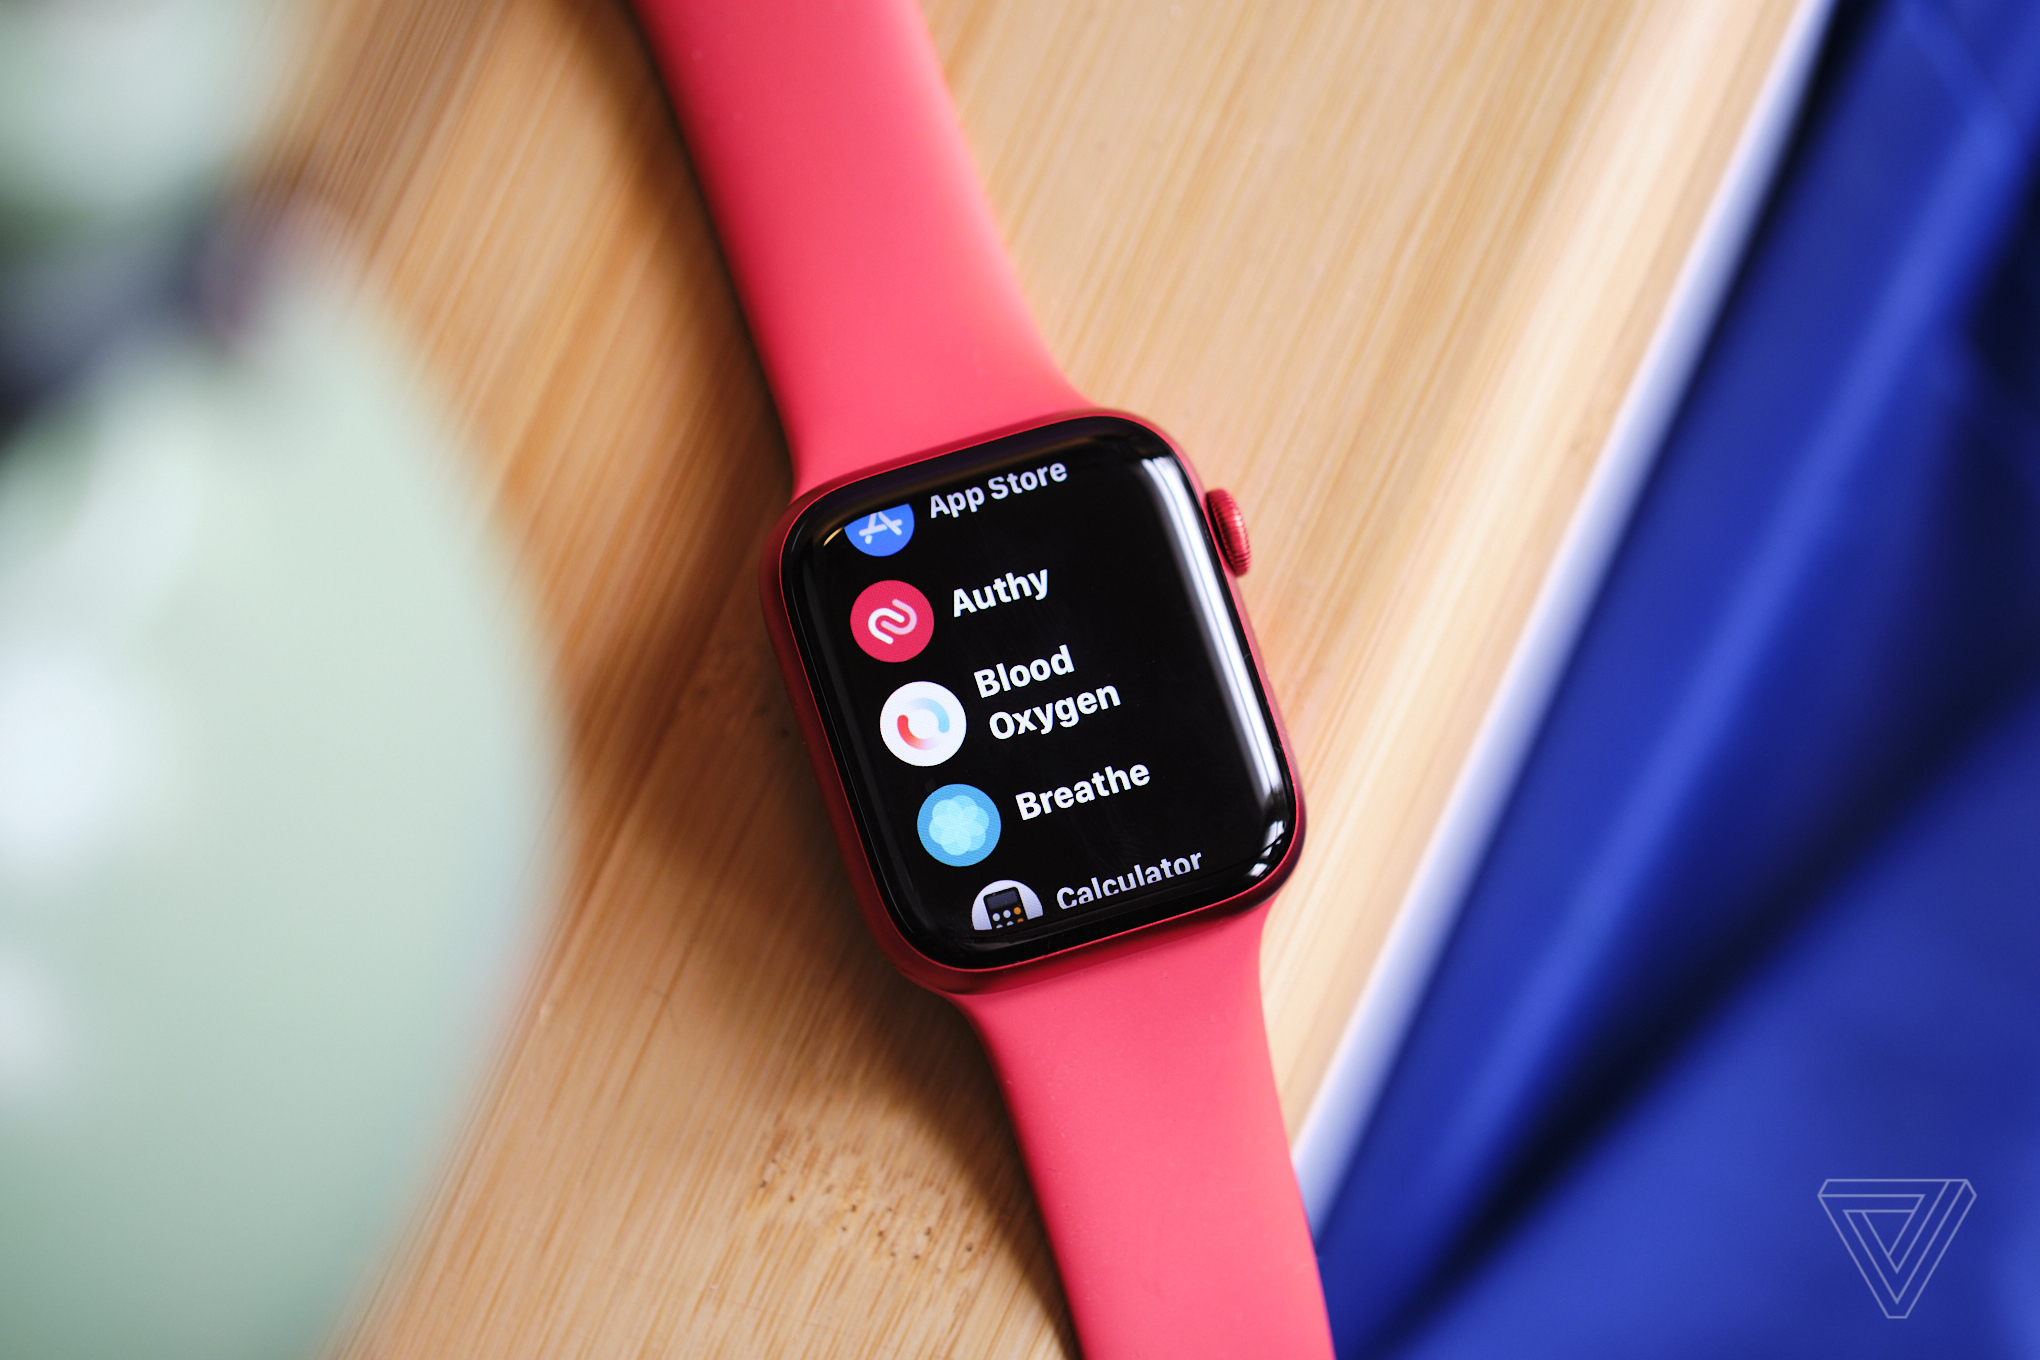 An Apple Watch with a red wristband sitting on a table, showing the blood oxygen app.